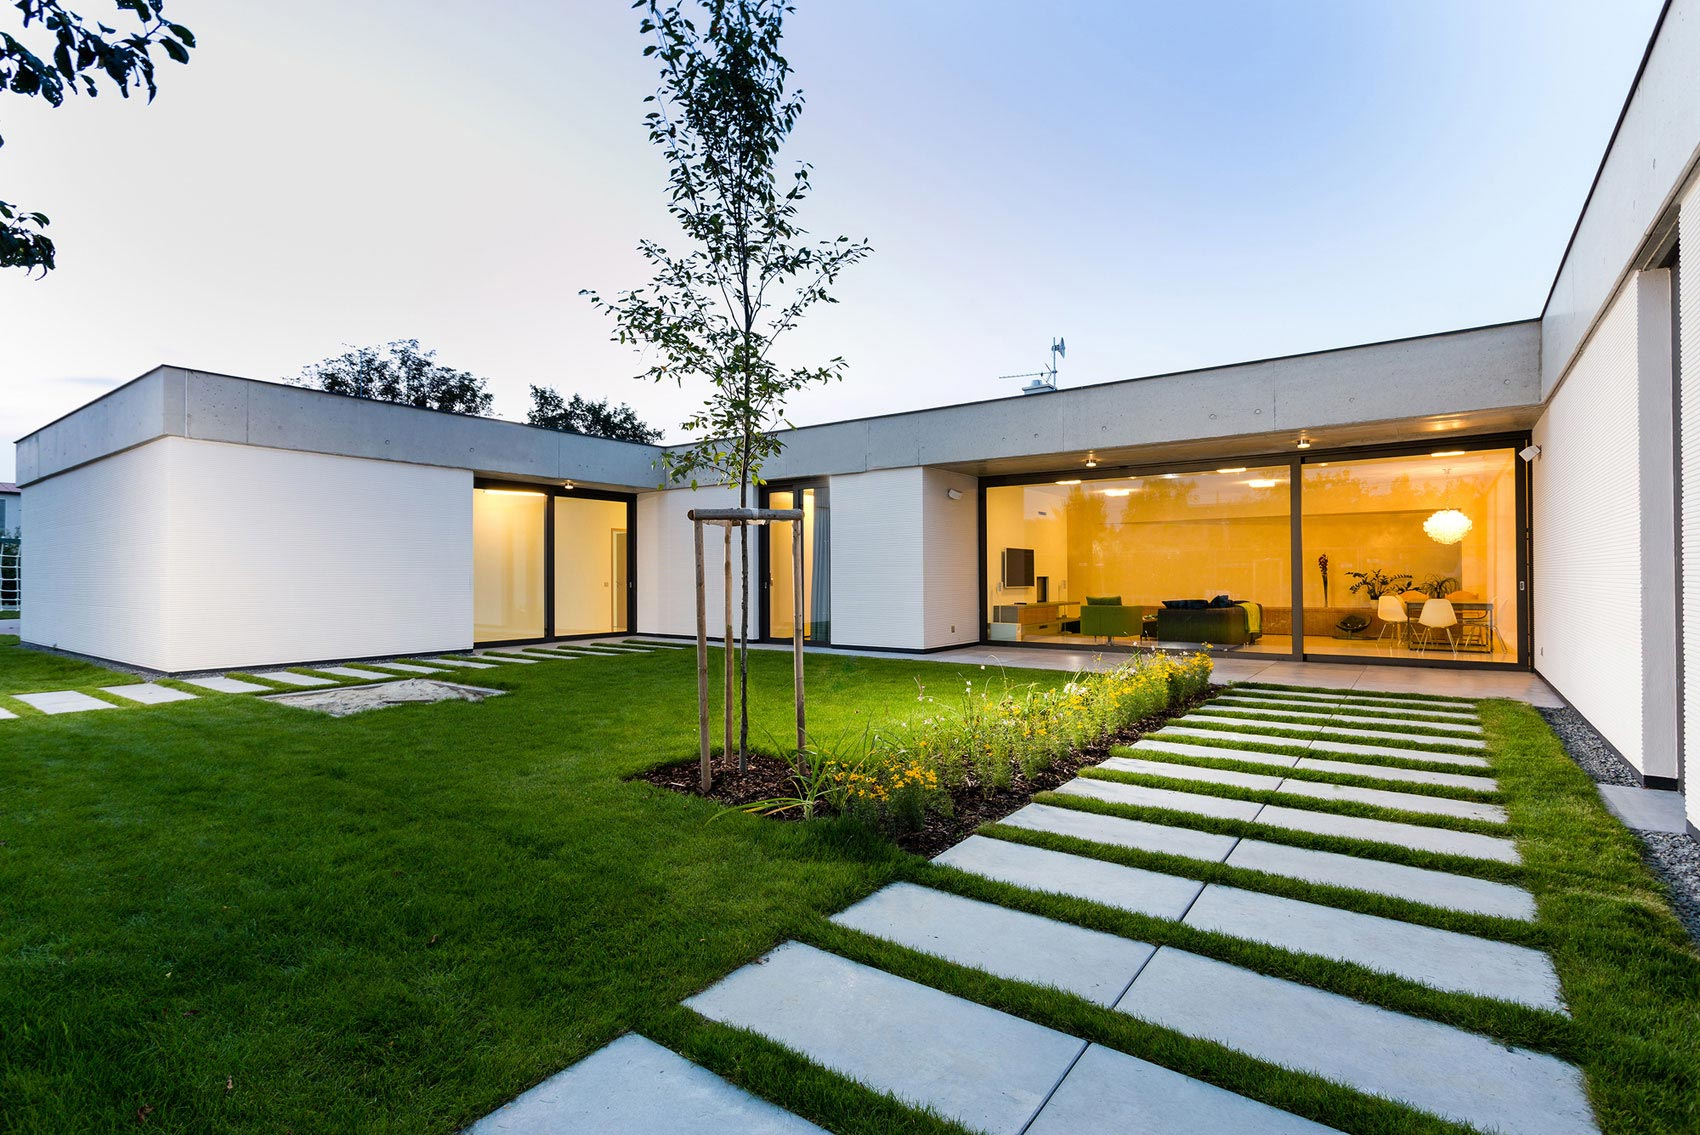 One Story Modern Home In Olomouc Slavon 237 N By Jvarchitekt